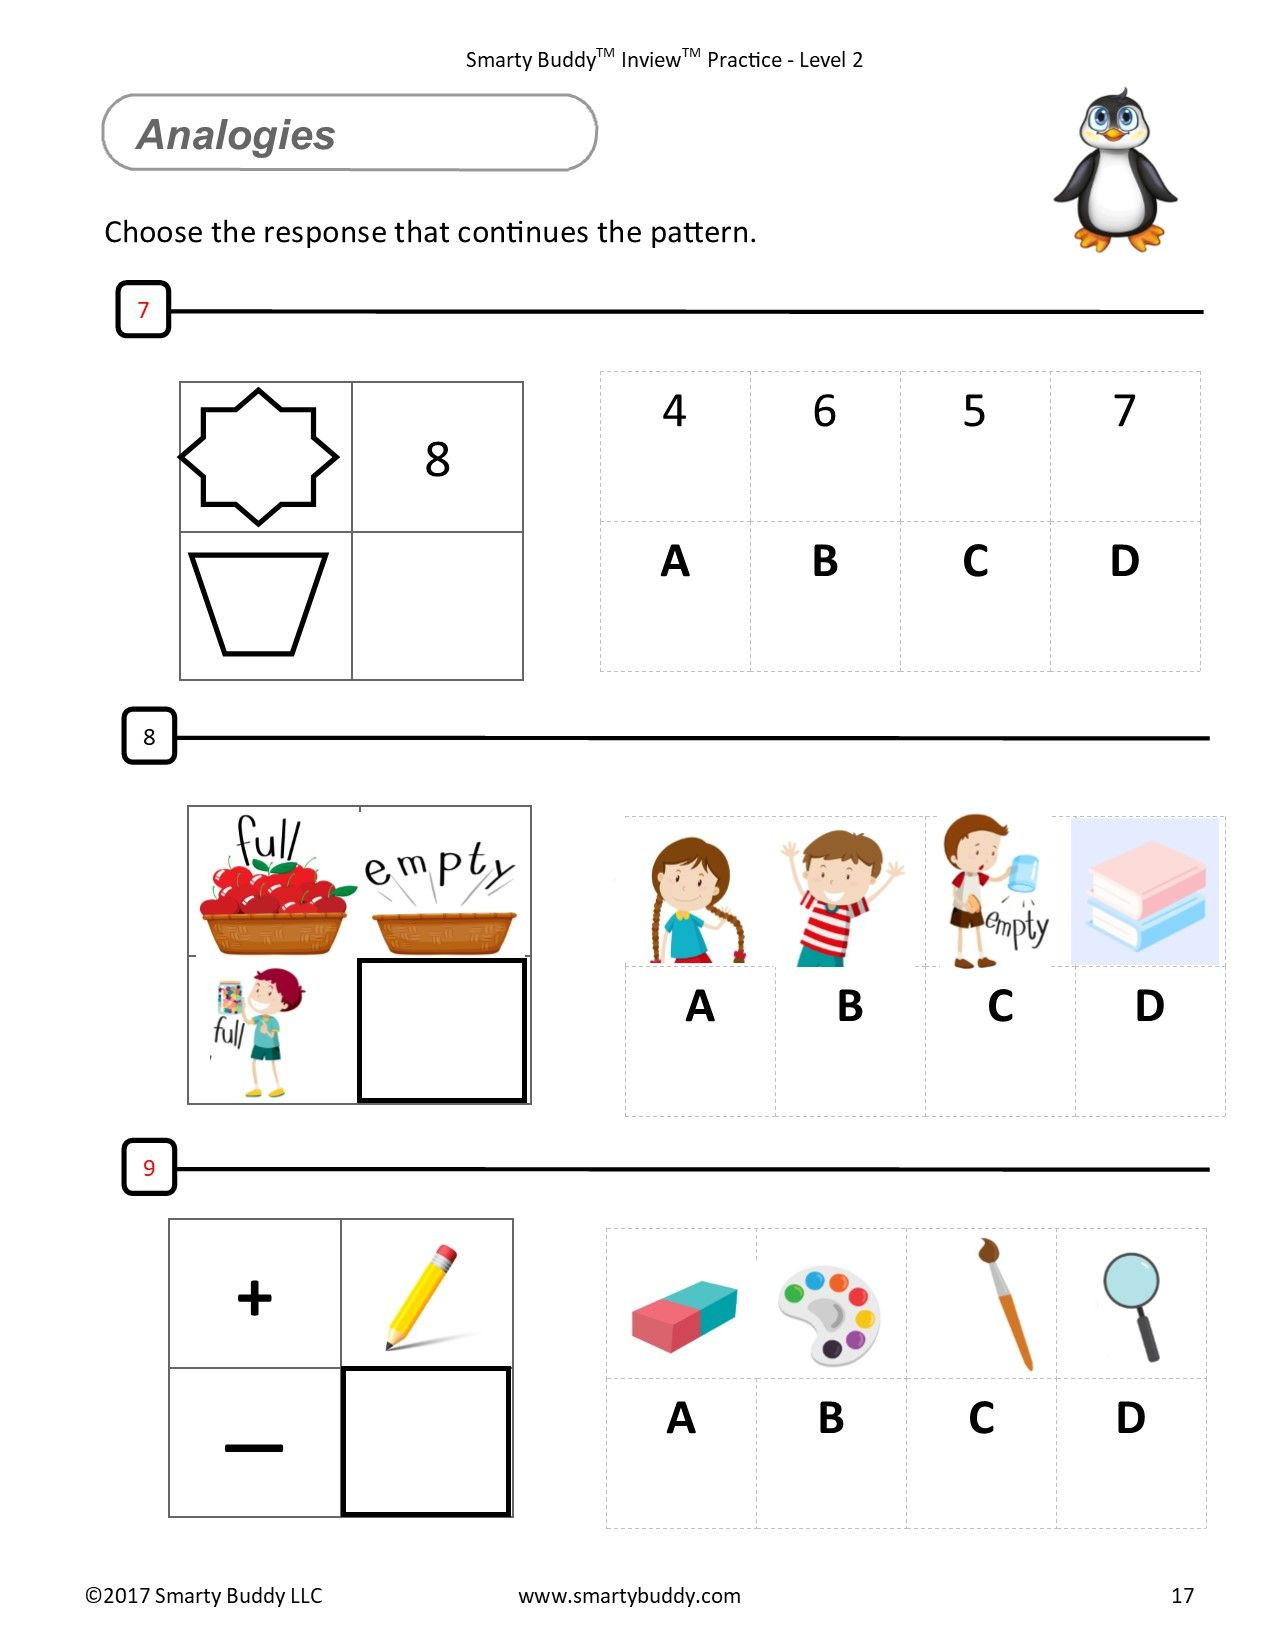 Gifted and Talented Math Worksheets Smarty Buddy Logic Gifted and Talented Kids Worksheets